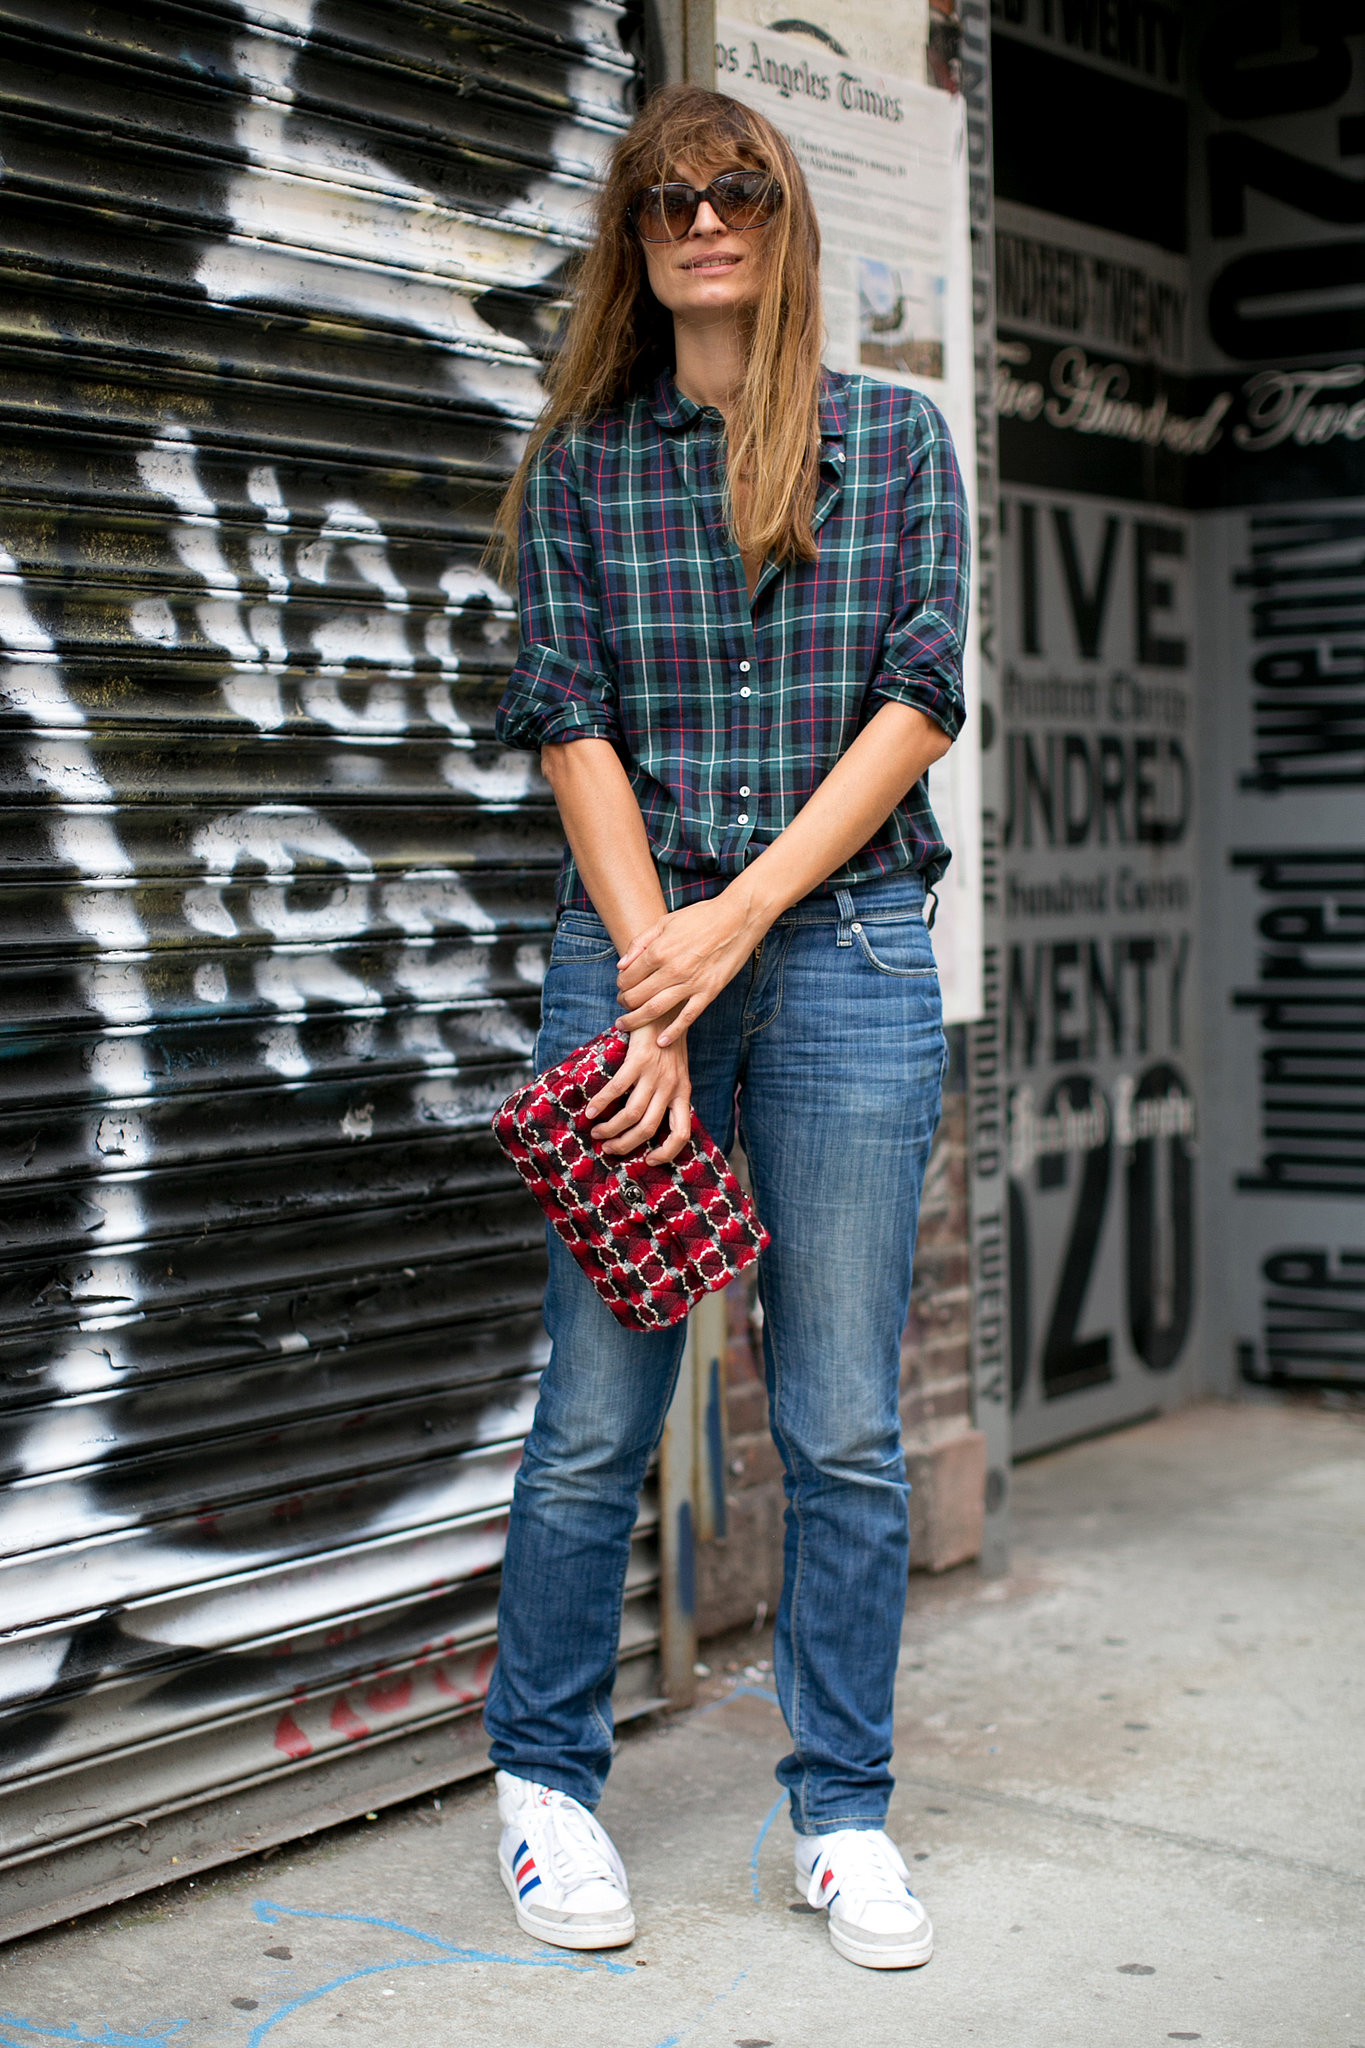 plaid-sneakers-denim-she-gets-our-vote-one